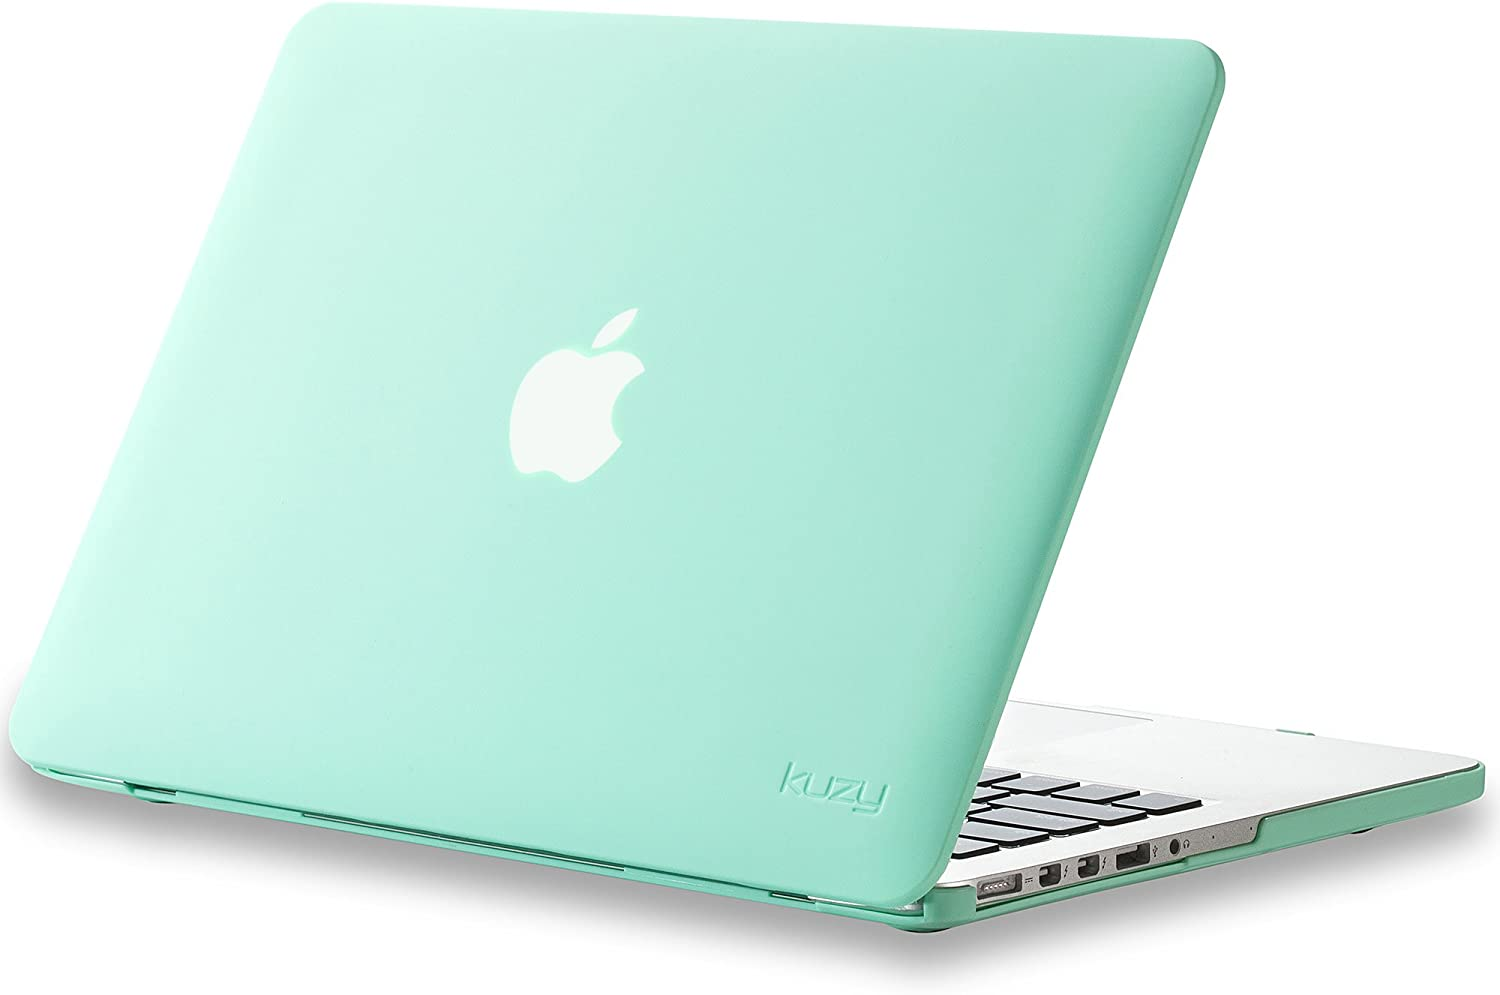 Kuzy - Older Version MacBook Pro 13.3 inch Case (Release 2015-2012) Rubberized Hard Cover for Model A1502 A1425 with Retina Display Shell Plastic - Mint Green